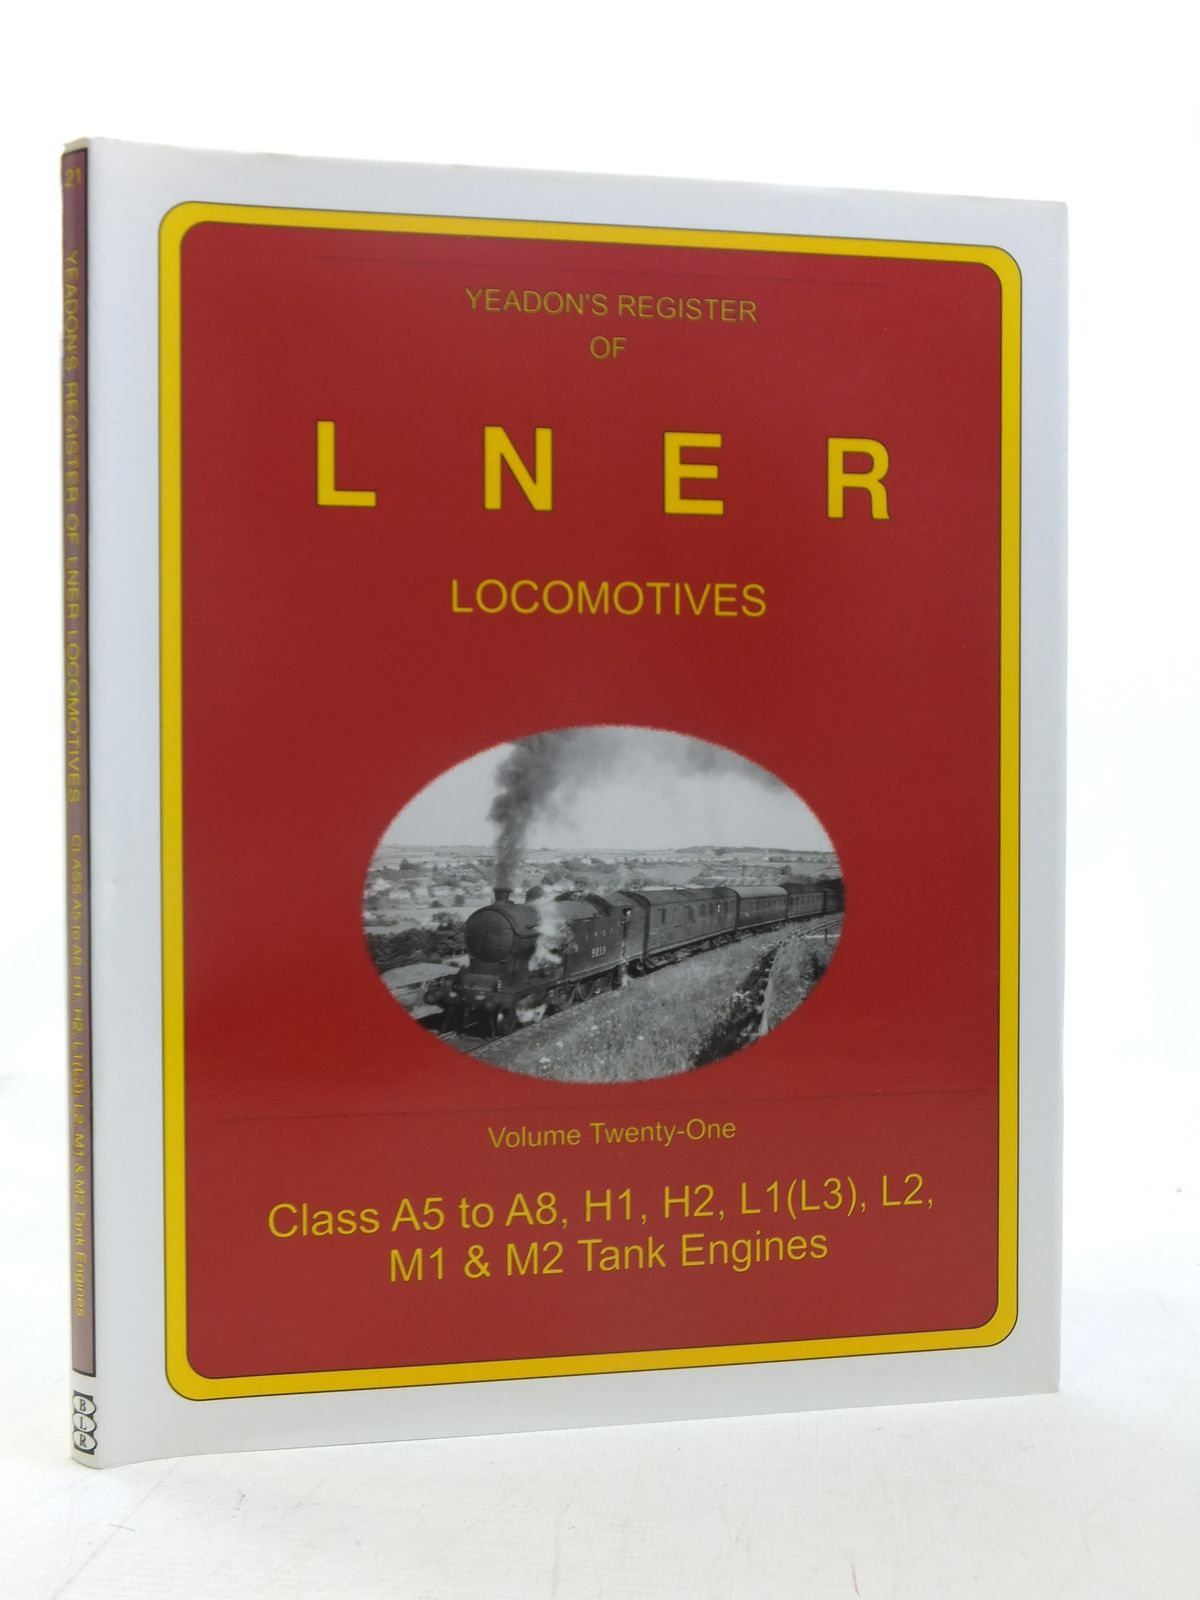 Photo of YEADON'S REGISTER OF LNER LOCOMOTIVES VOLUME TWENTY-ONE published by Booklaw Railbus (STOCK CODE: 1606846)  for sale by Stella & Rose's Books